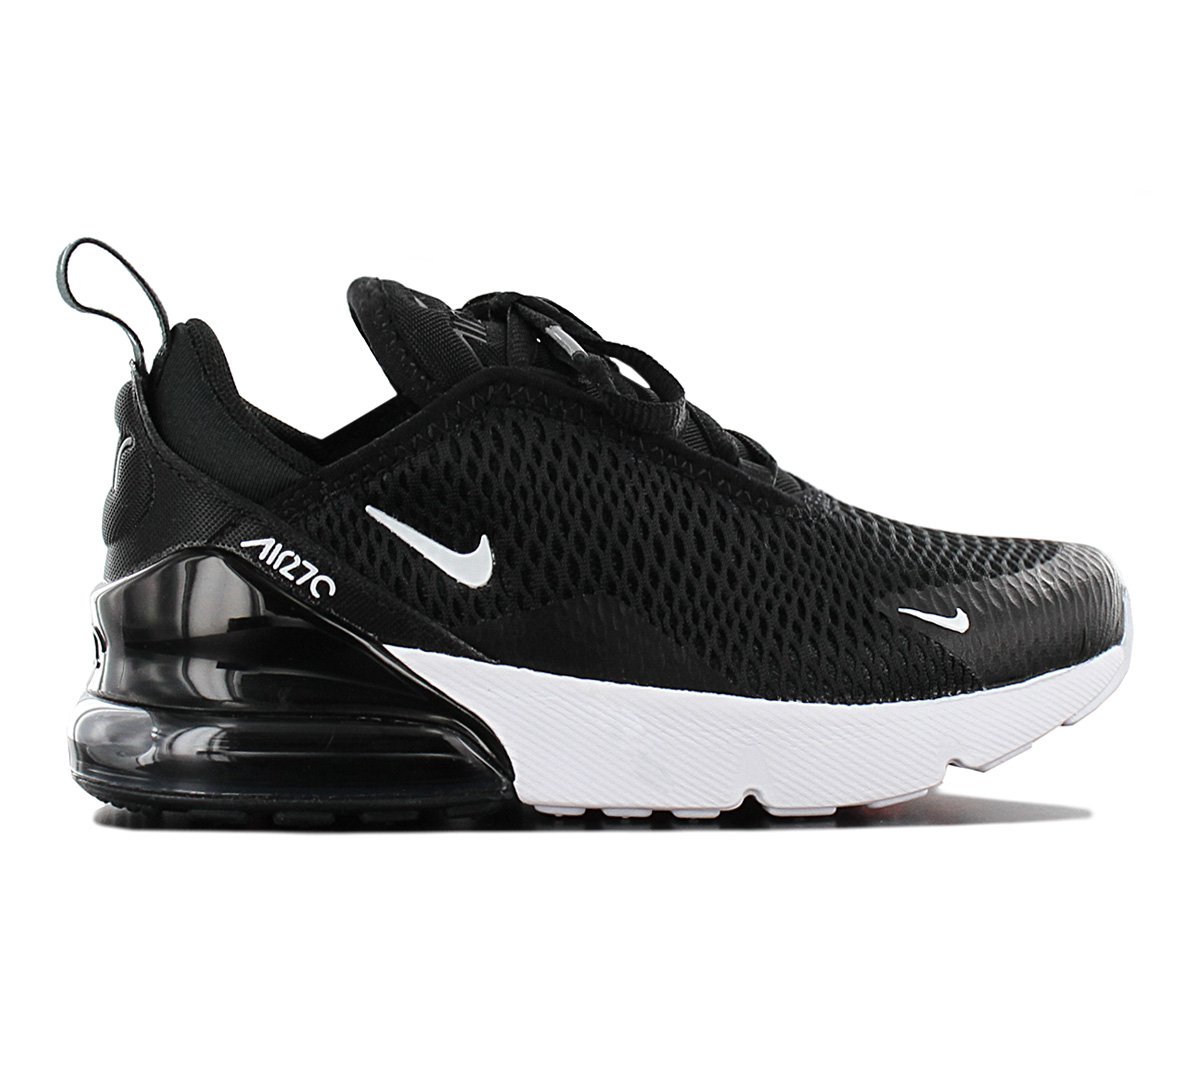 new arrival 91f06 945bd Nike Air Max 270 Kids Sneaker Shoes Ao2372-001   eBay